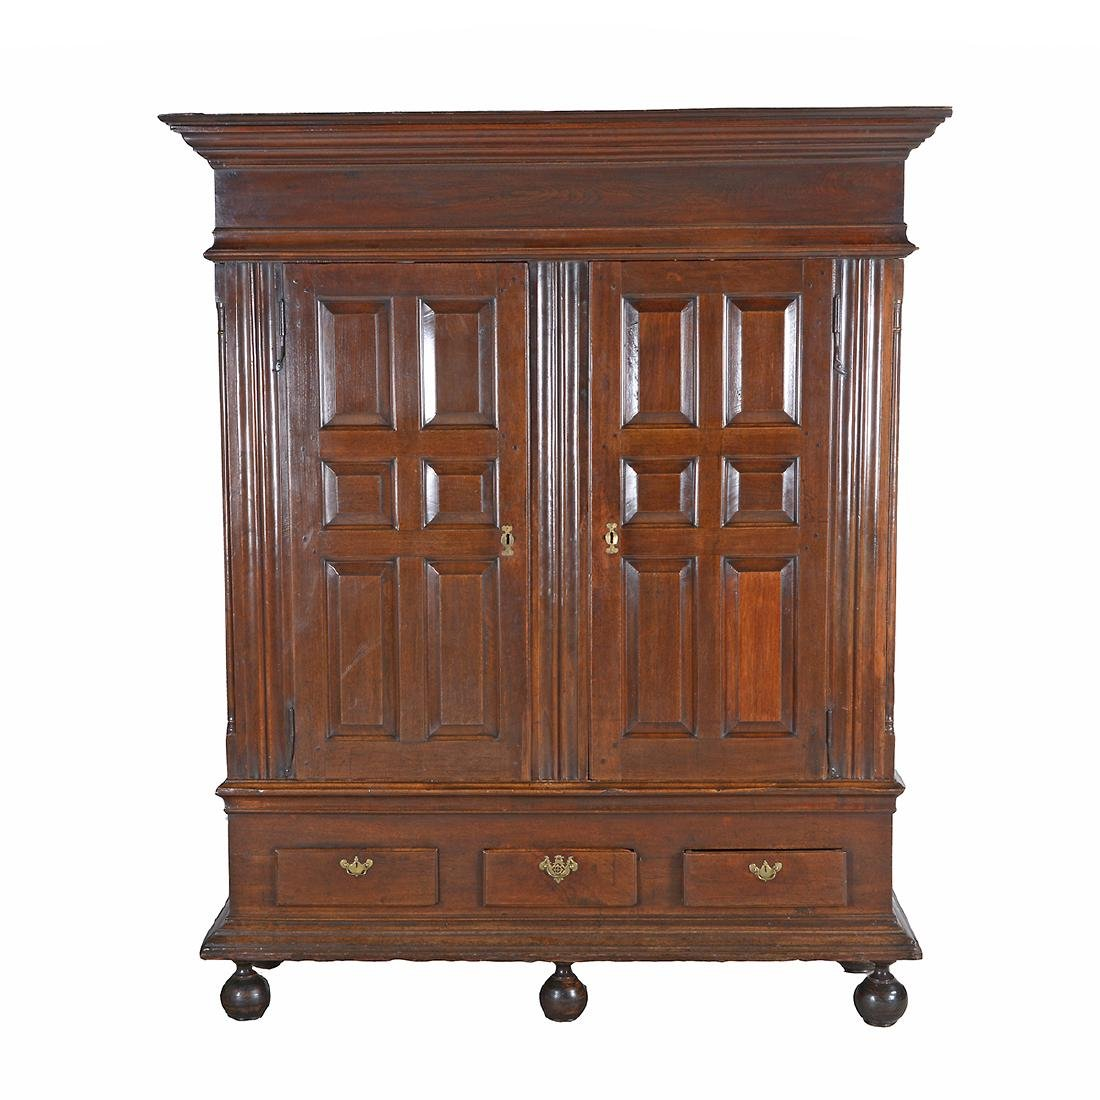 American Chippendale Lancaster County Walnut Kas.